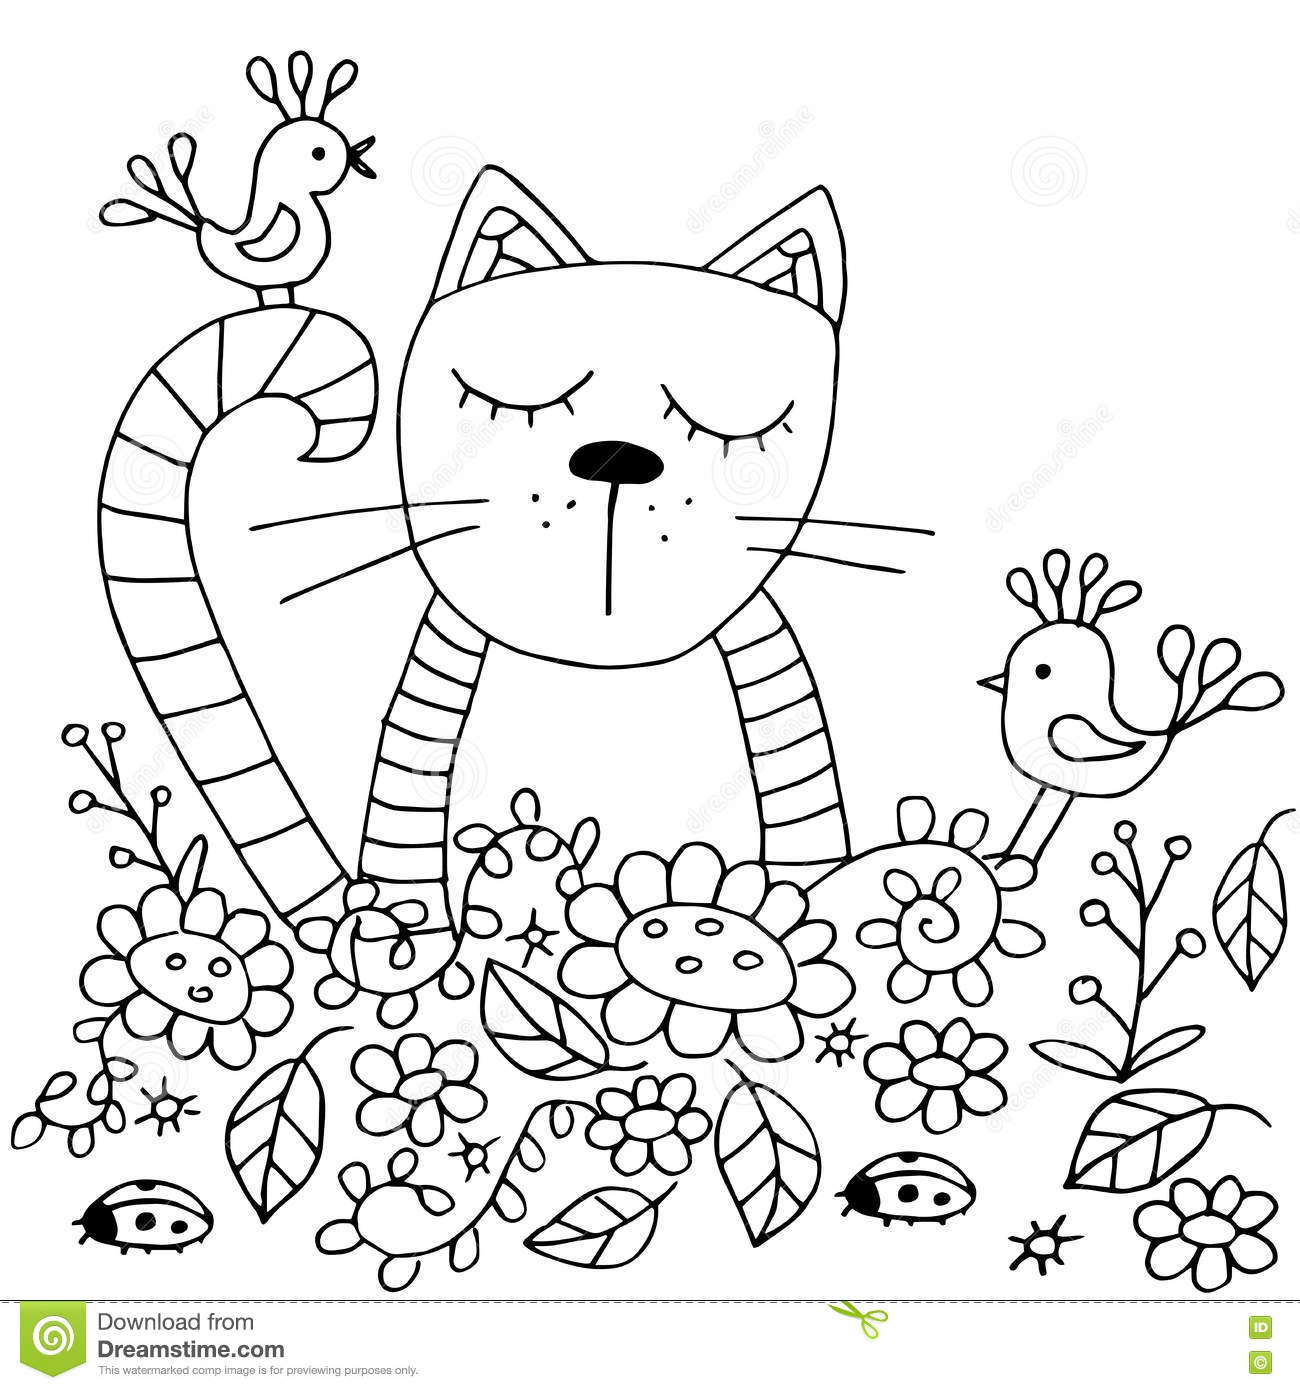 High Quality Original Coloring Pages For Adults And Kids. Stock ...